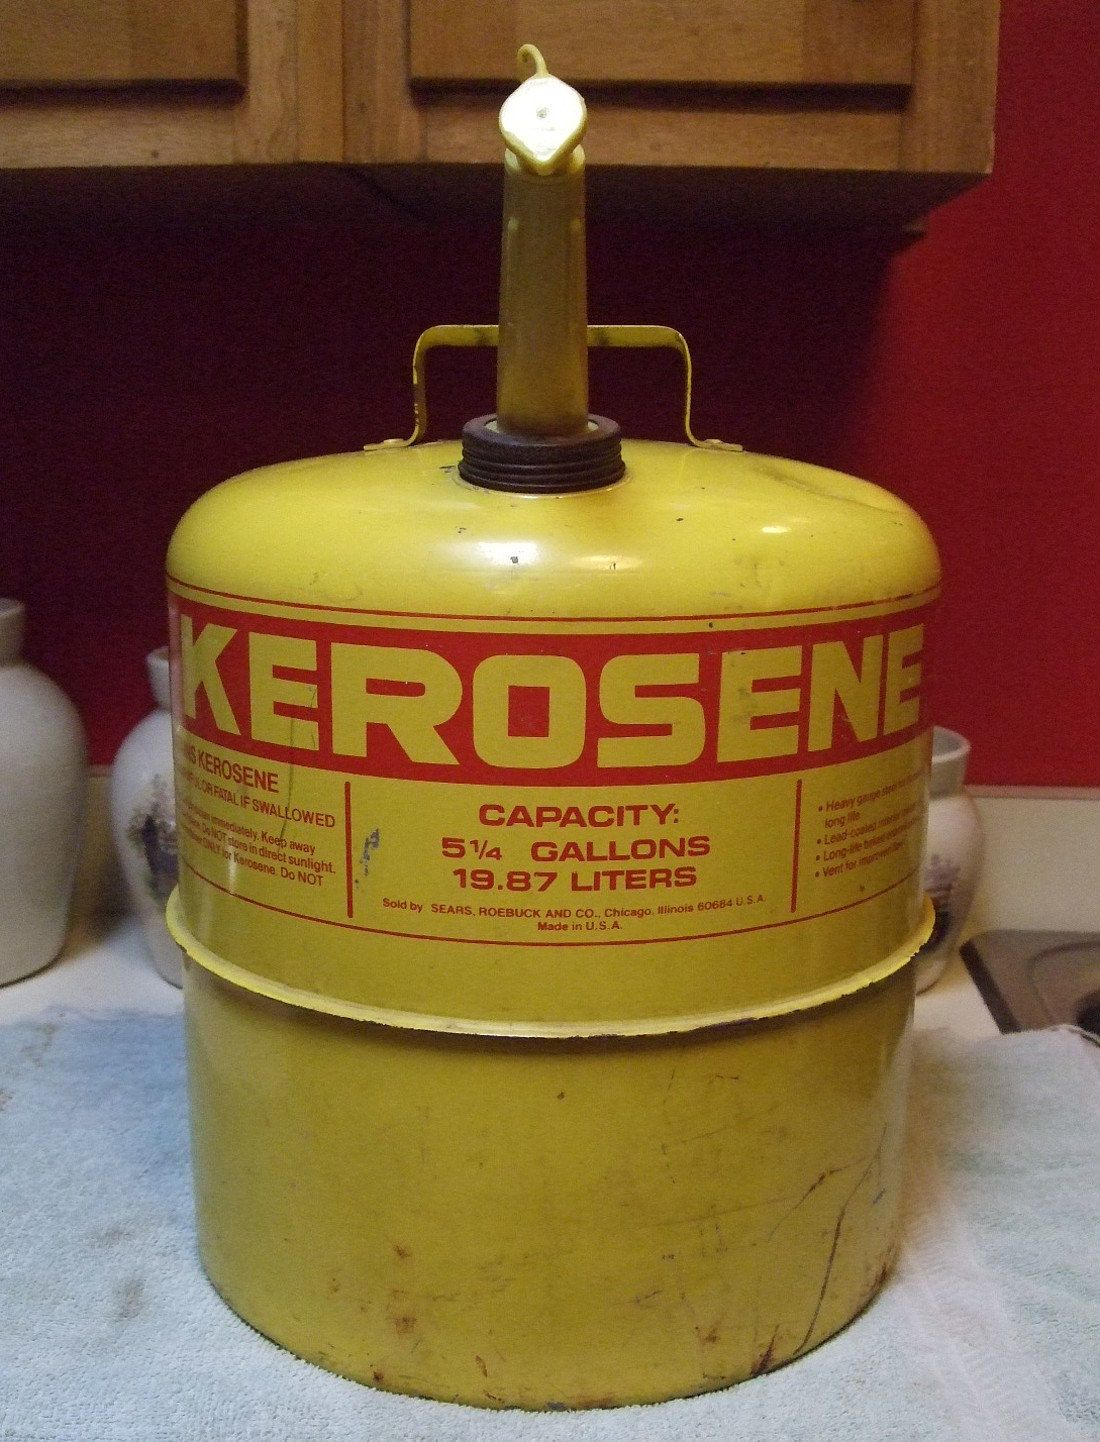 Rare Sears Craftsman Yellow Kerosene Oil Gas Can Approved Fire Marshall 1977 Original Spout Brass Screen 5 1 4 Gallons Roebuck Gas Cans Roebuck Sears Craftsman